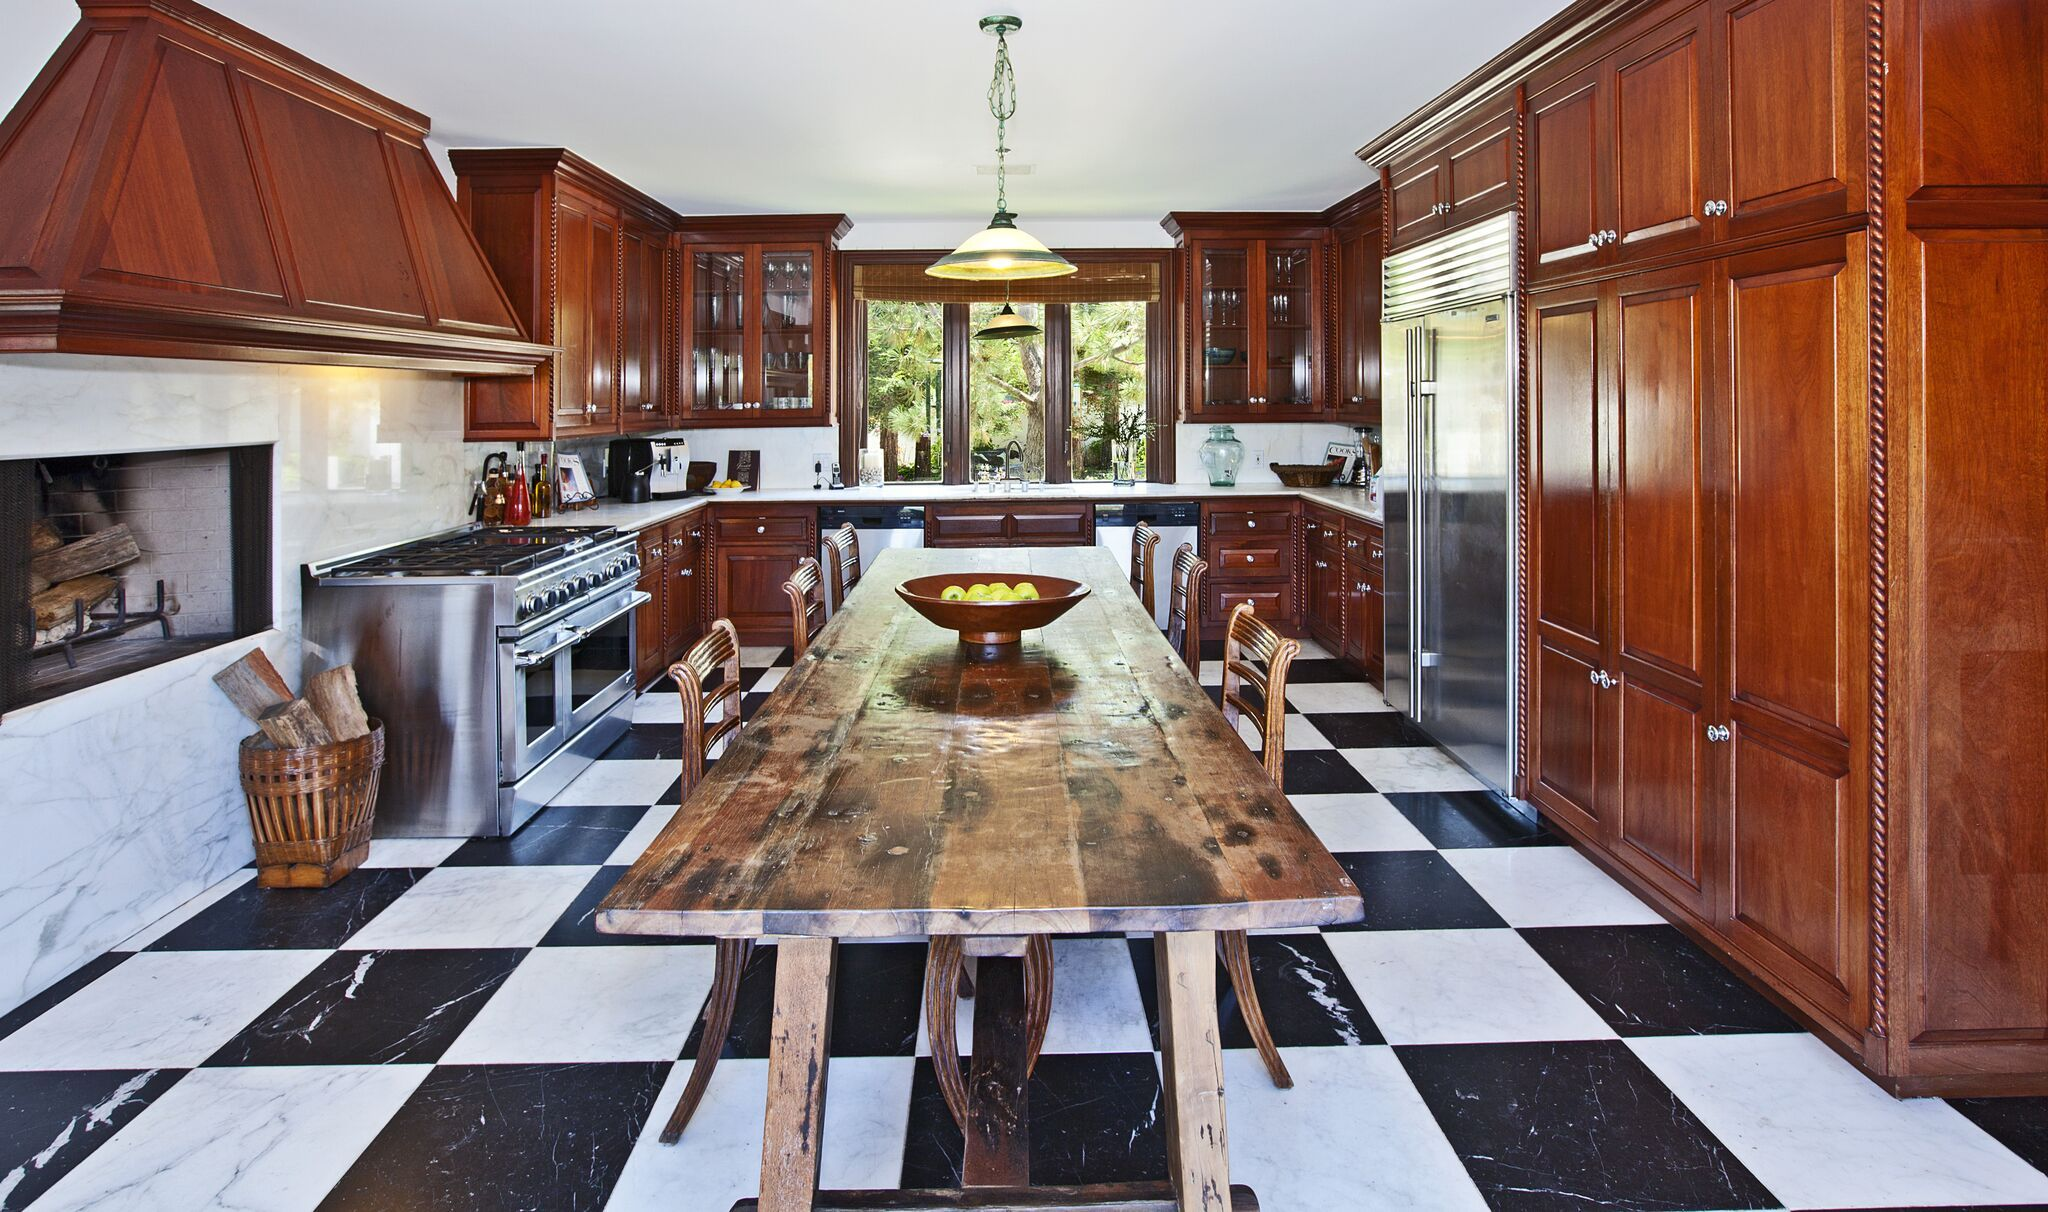 White painted kitchen cabinets before and after Cabinets Ideas White Kitchen Cabinets Hgtvcom 14 Best White Kitchen Cabinets Design Ideas For White Cabinets